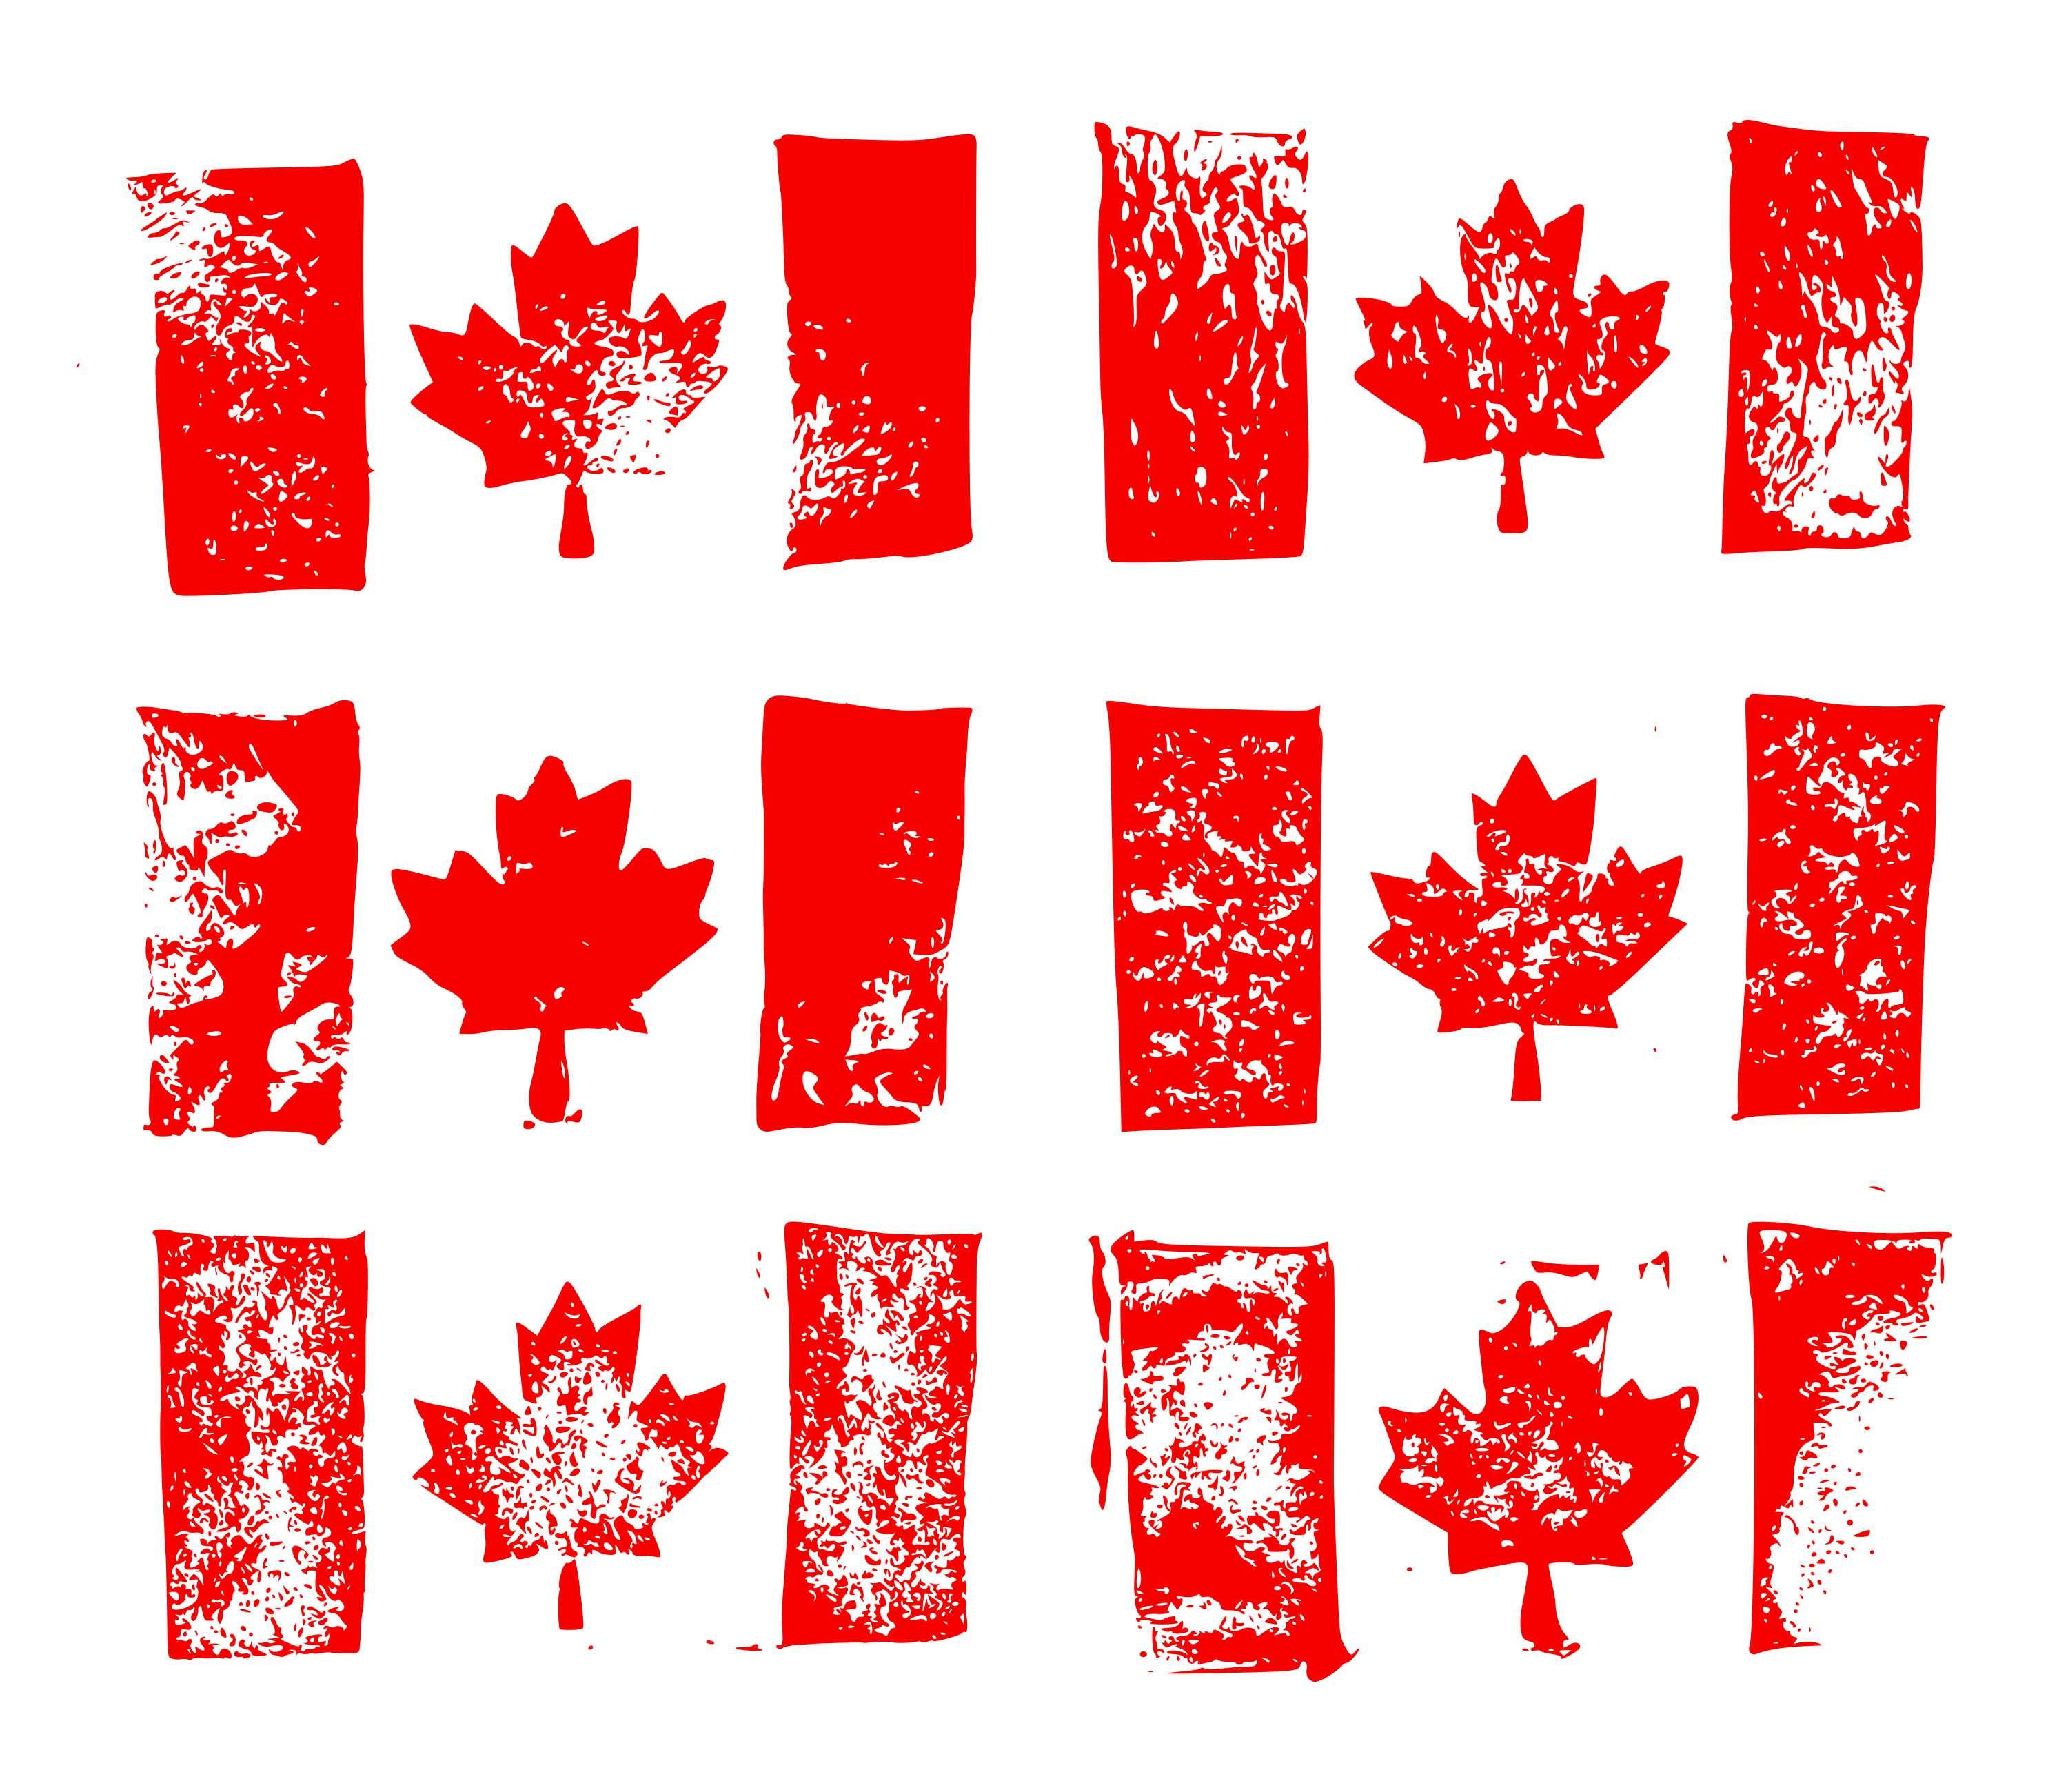 grunge-flag-of-canada-cover.jpg